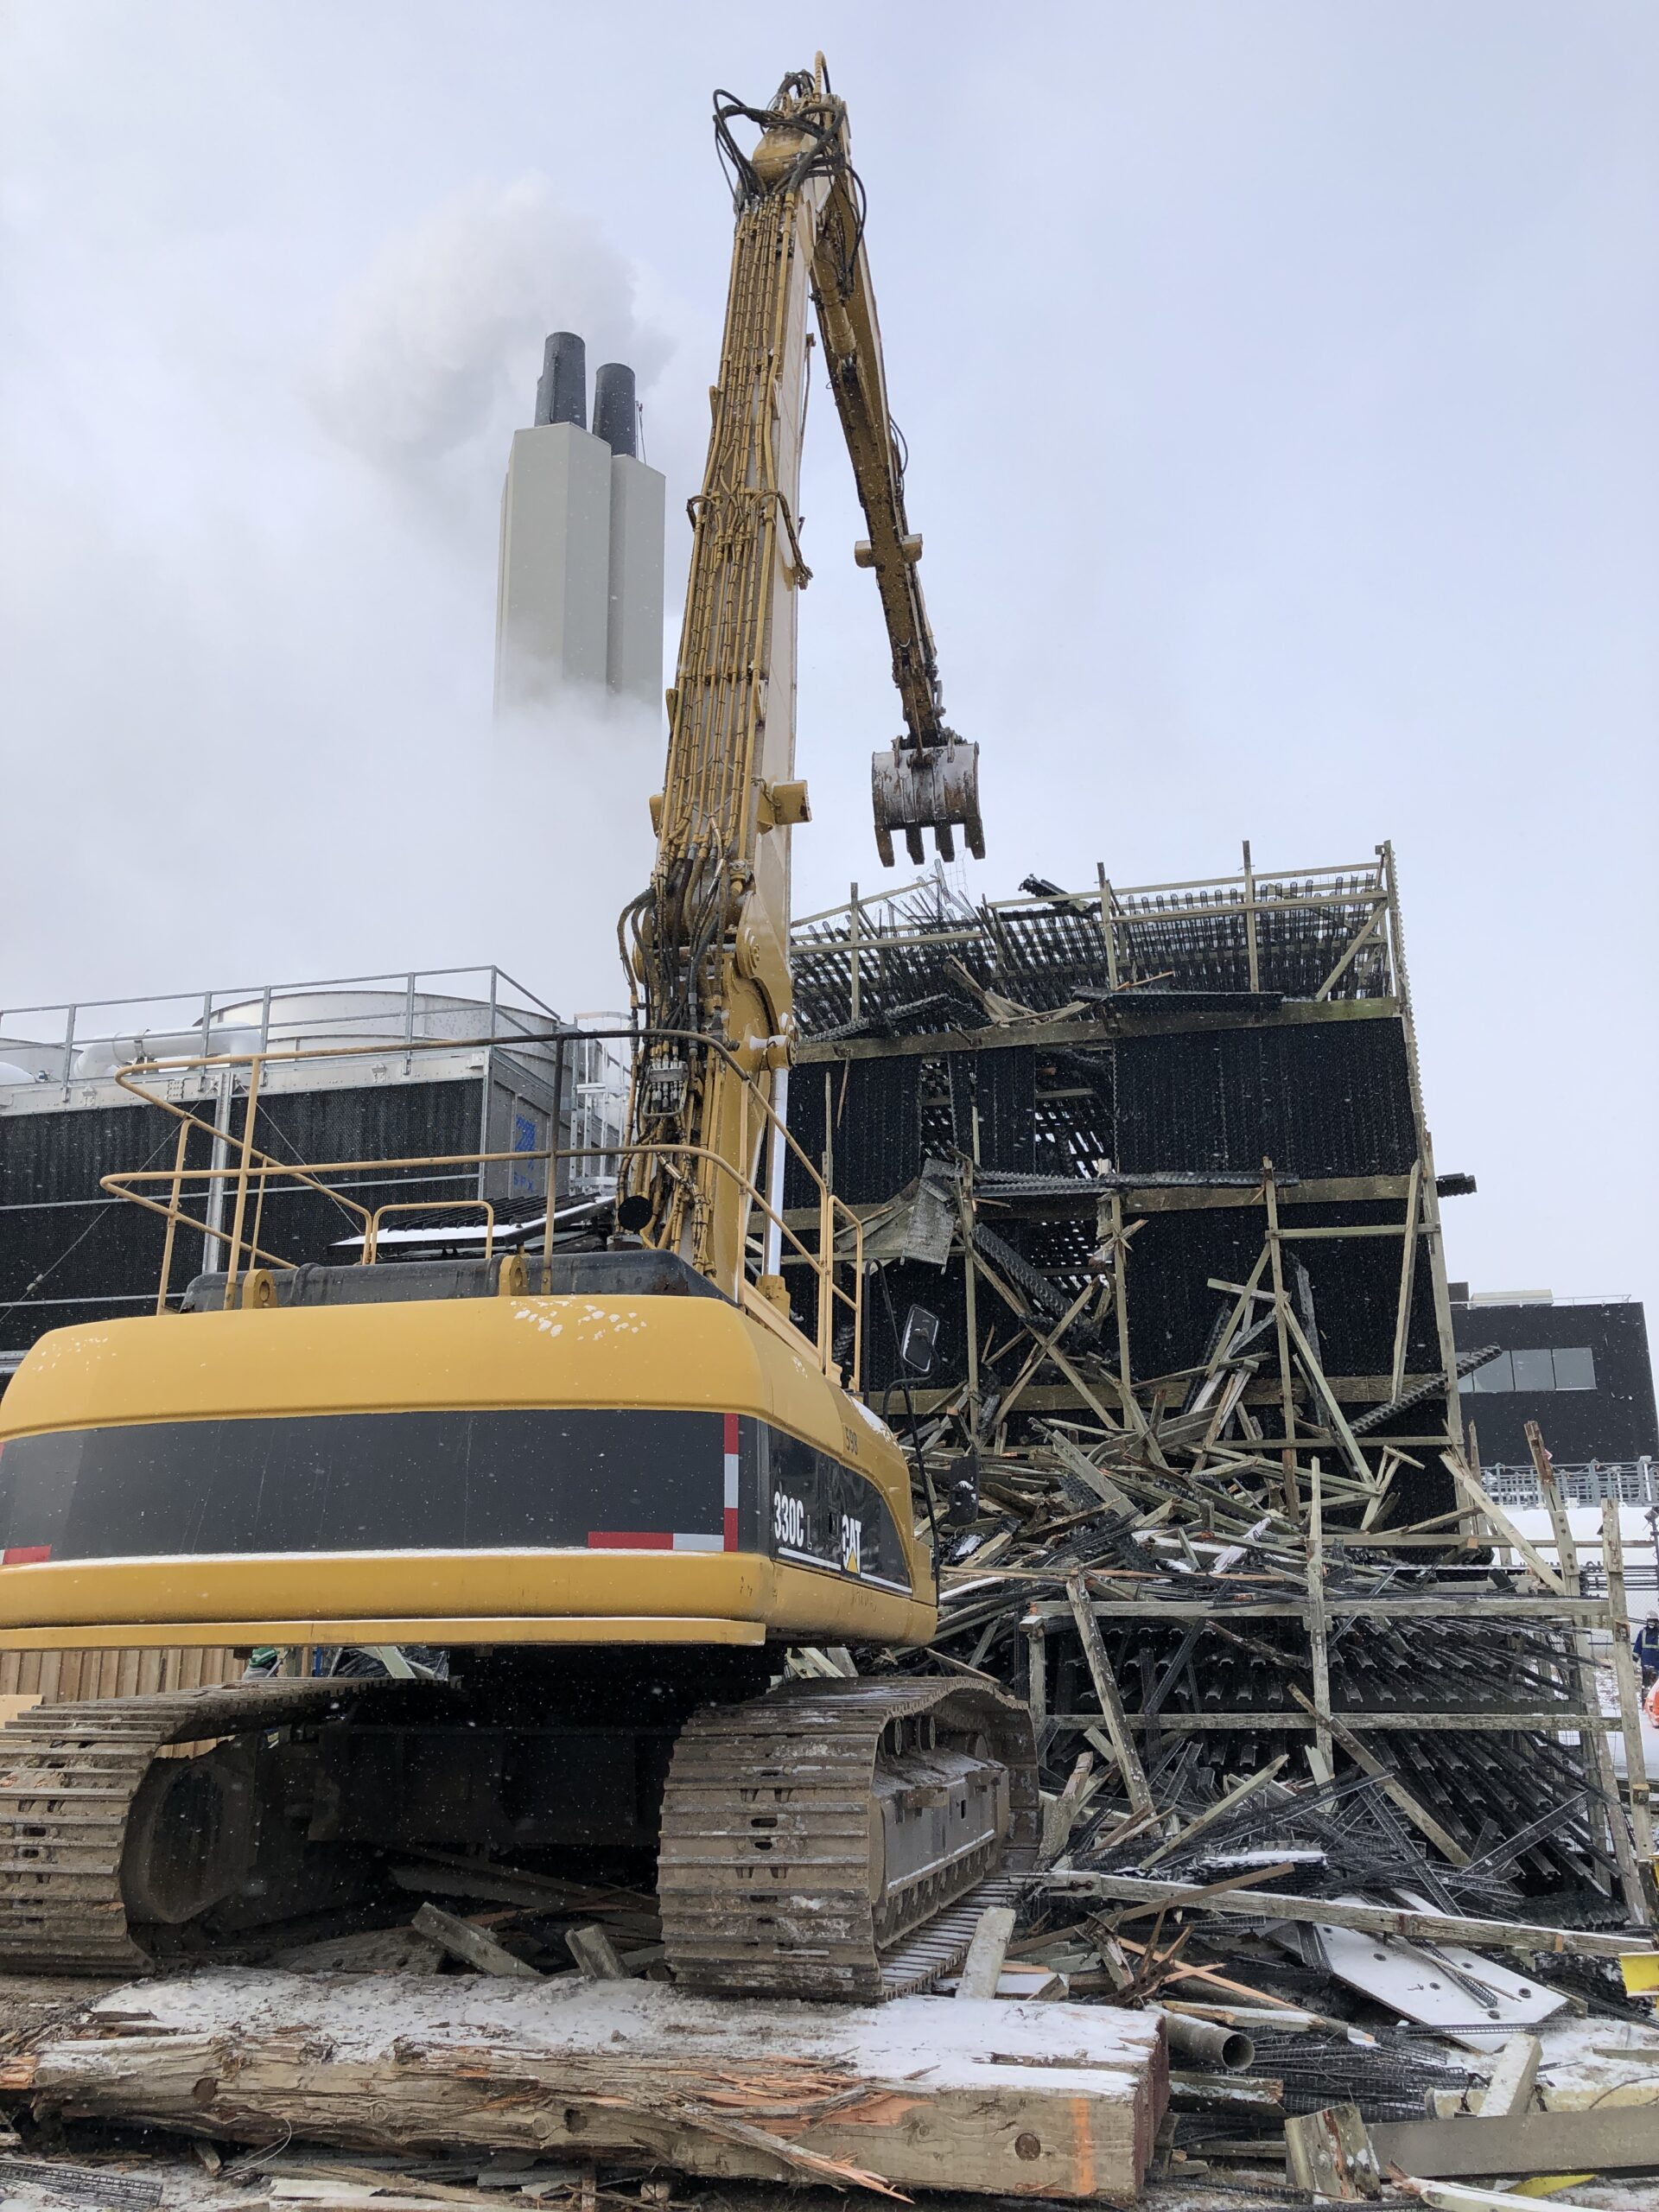 demolition of the Tower